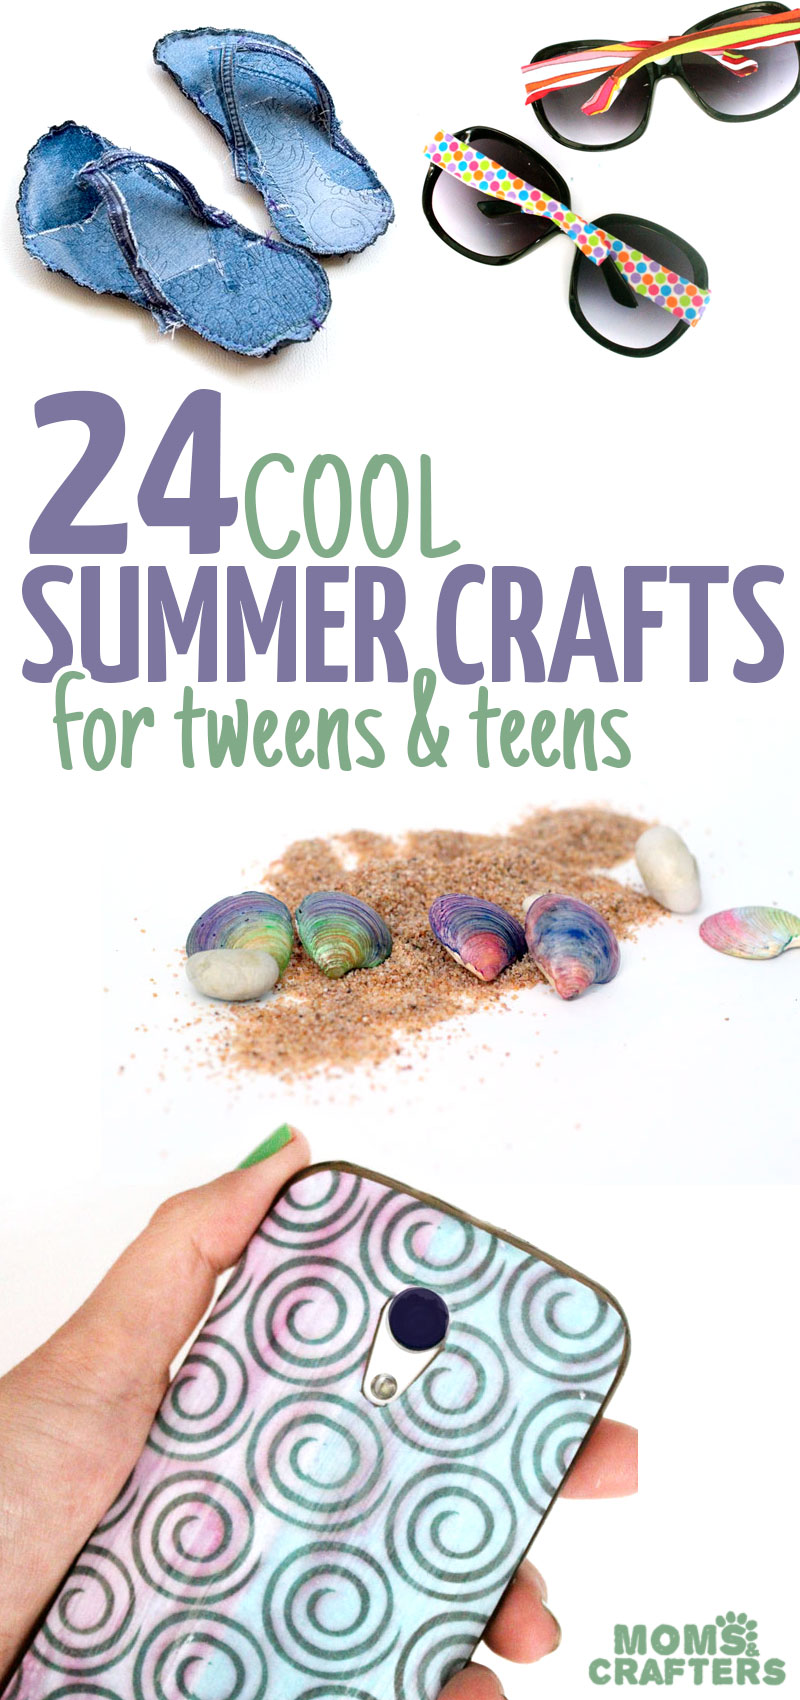 25 Cool summer crafts for teens and tweens are sure to keep them busy during these months! These summer camp crafts are perfect boredom busters in hot weather! from DIY sunglaees, to flip flops and tees, these are all totally awesome!